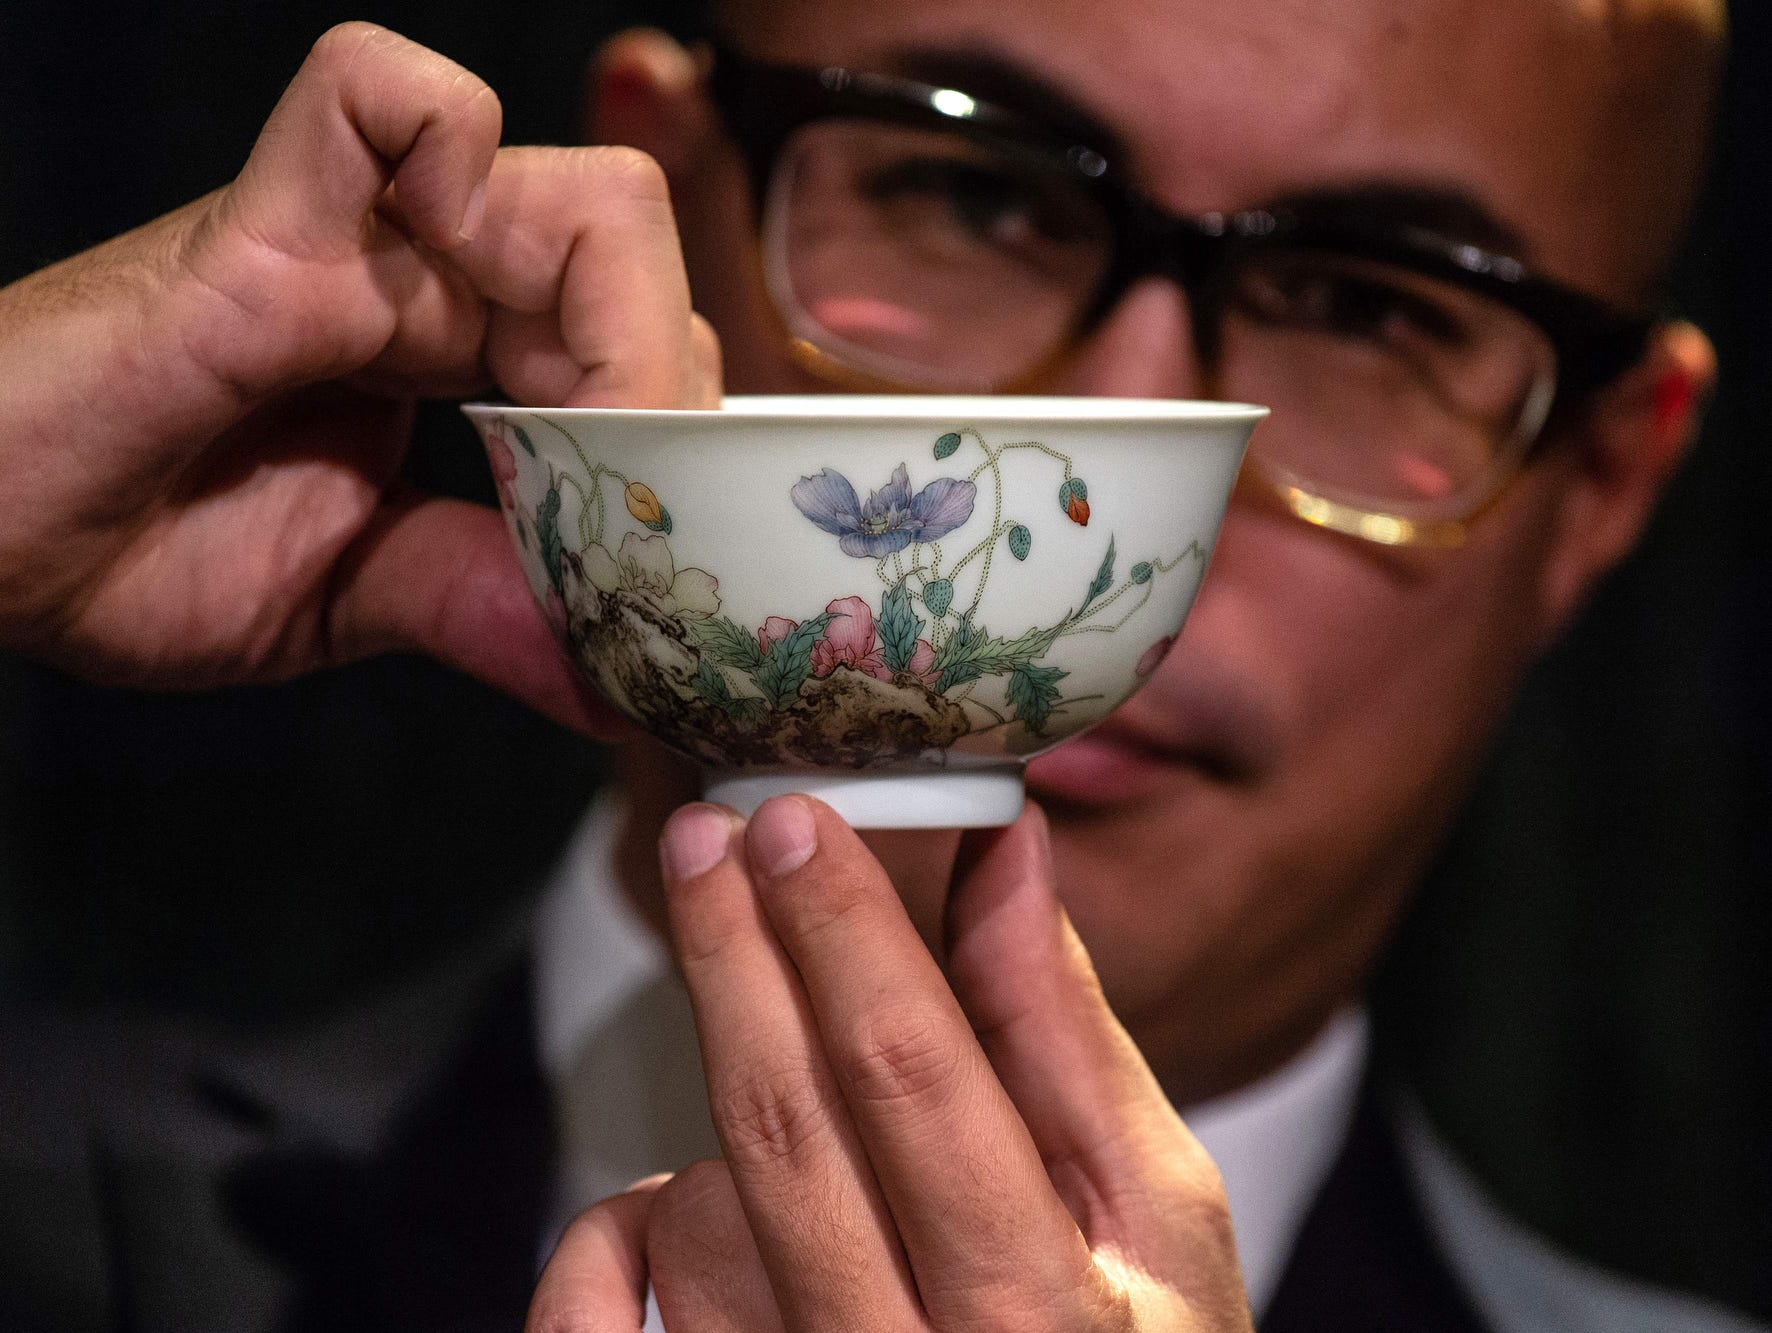 A Falangcai Poppy Bowl is displayed during a media preview for the Sotheby's Chinese Works of Art Autumn Sales in Hong Kong on Aug. 30, 2018. - The bowl sold for $2,1621,622.13 USD.